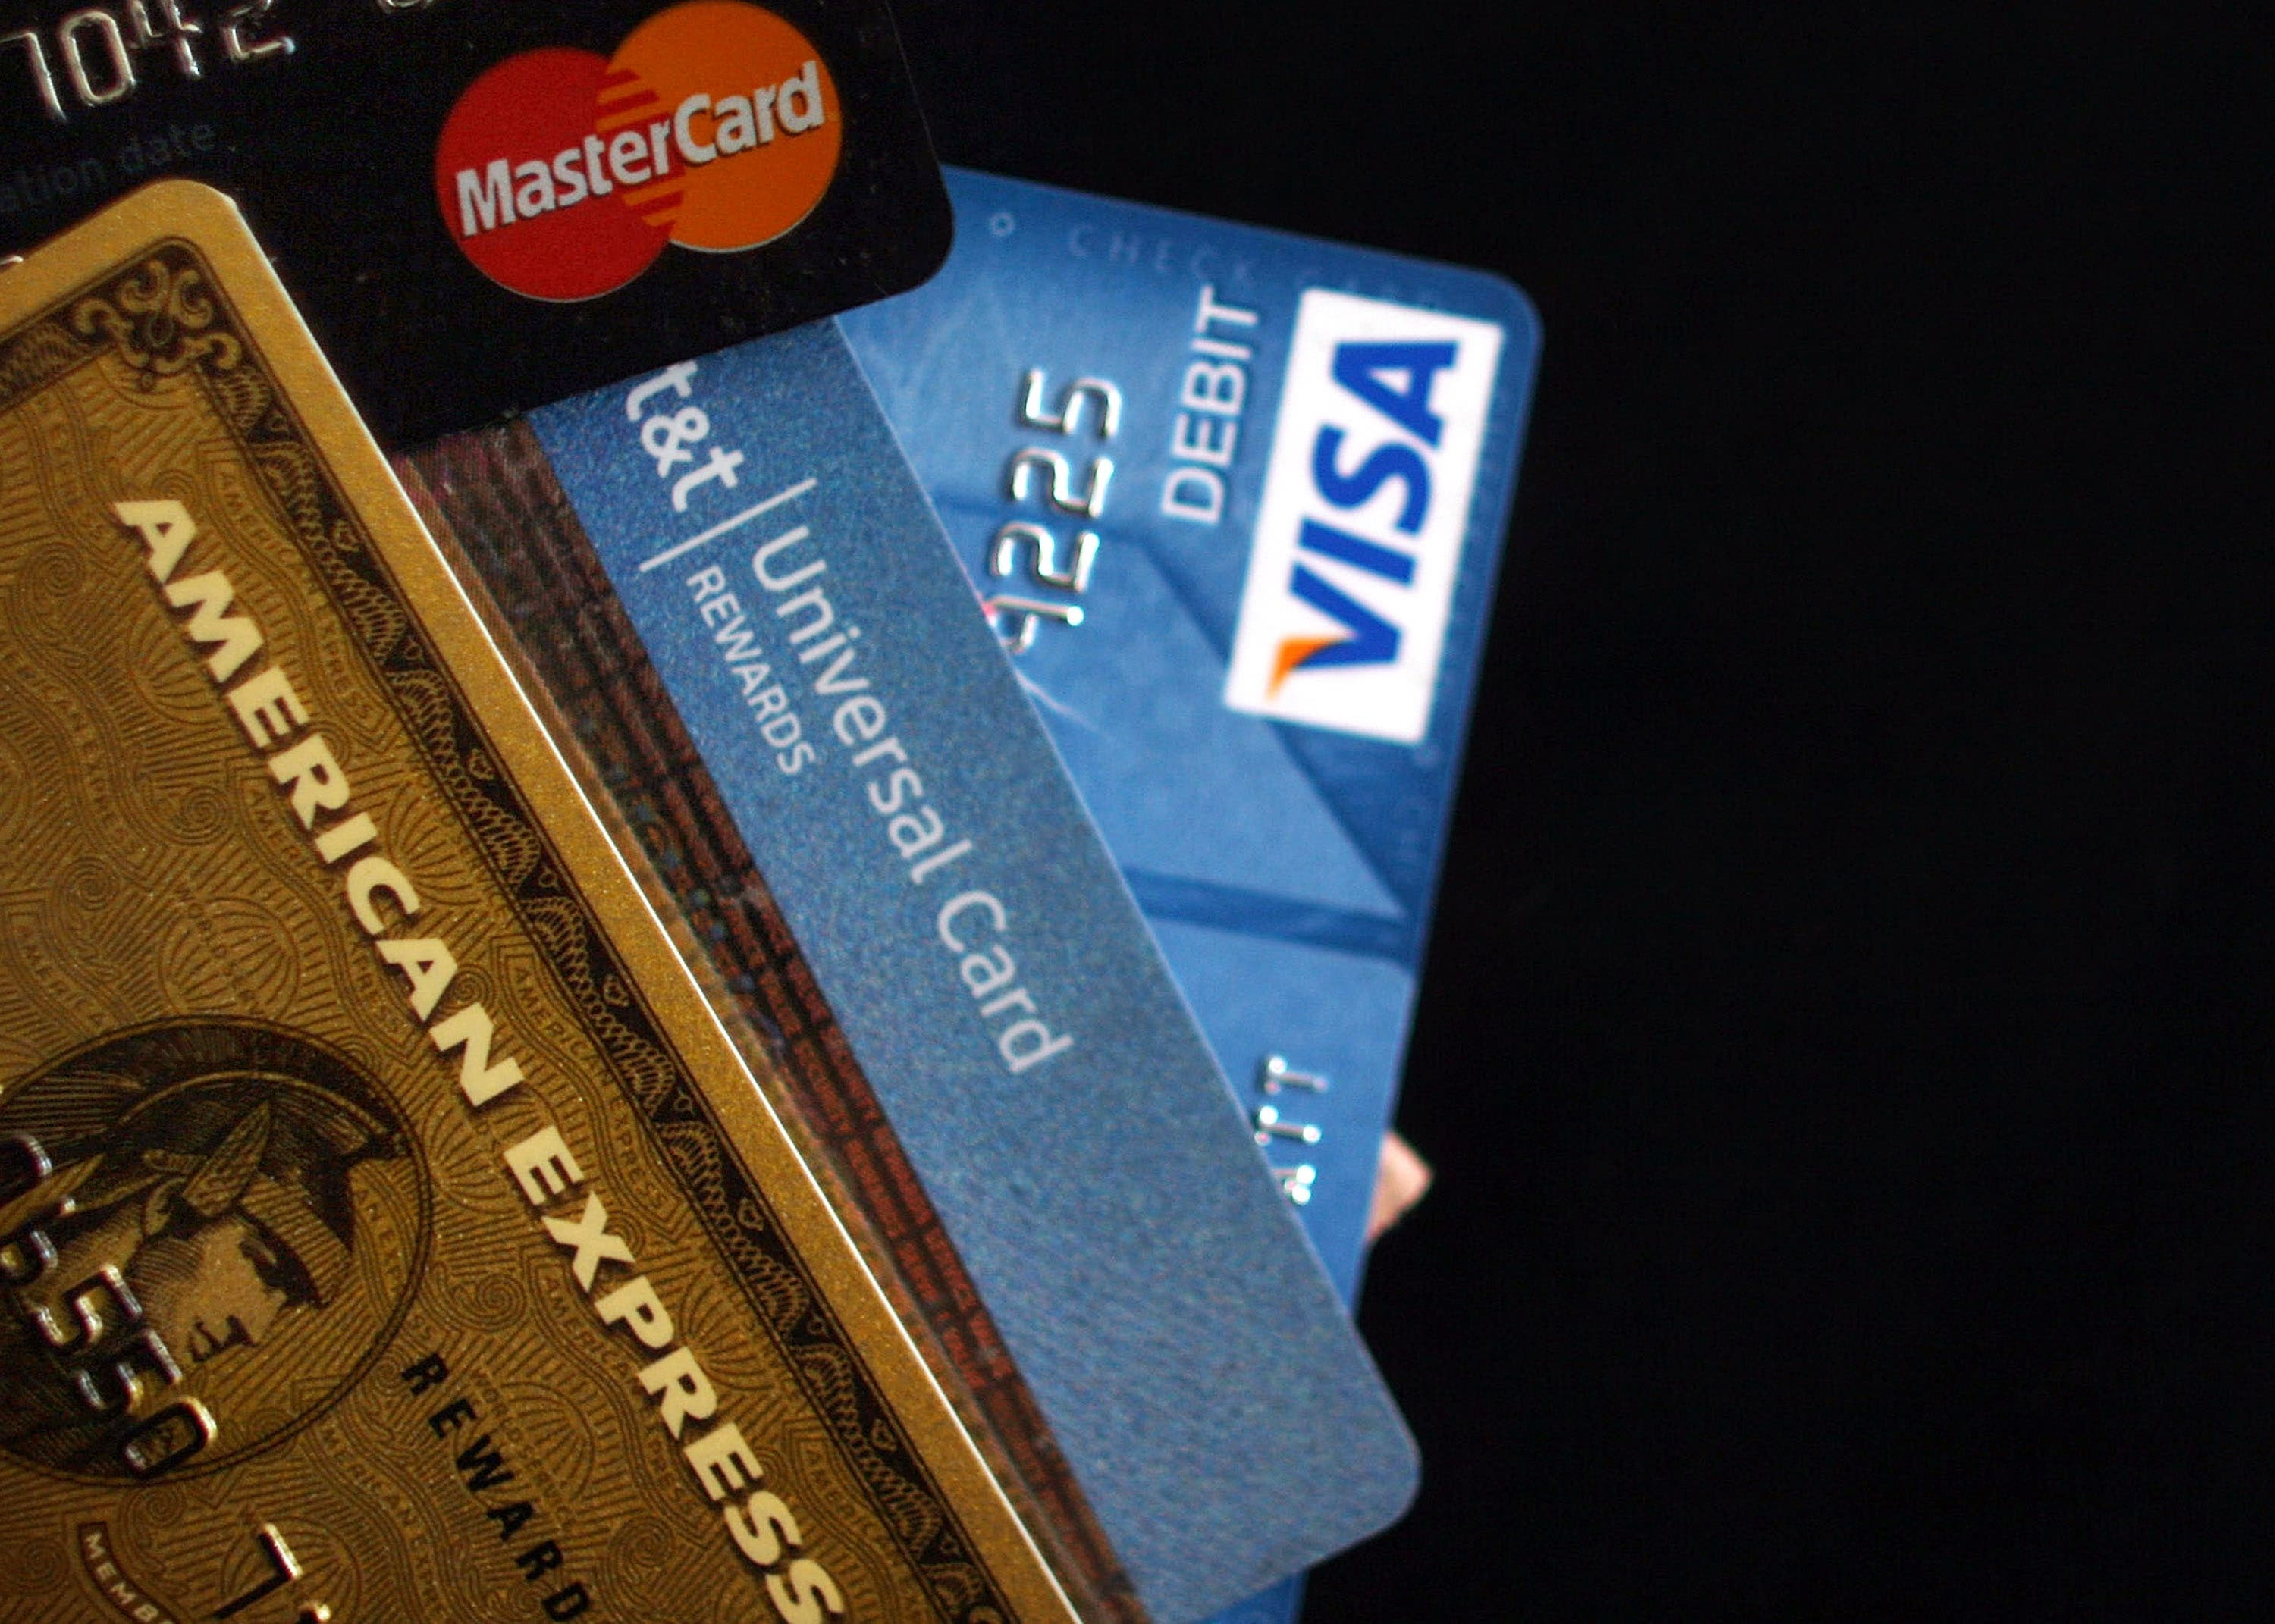 Credit Card issuance is easy, but it has certain requirements and limitations that should be clear to the customer.